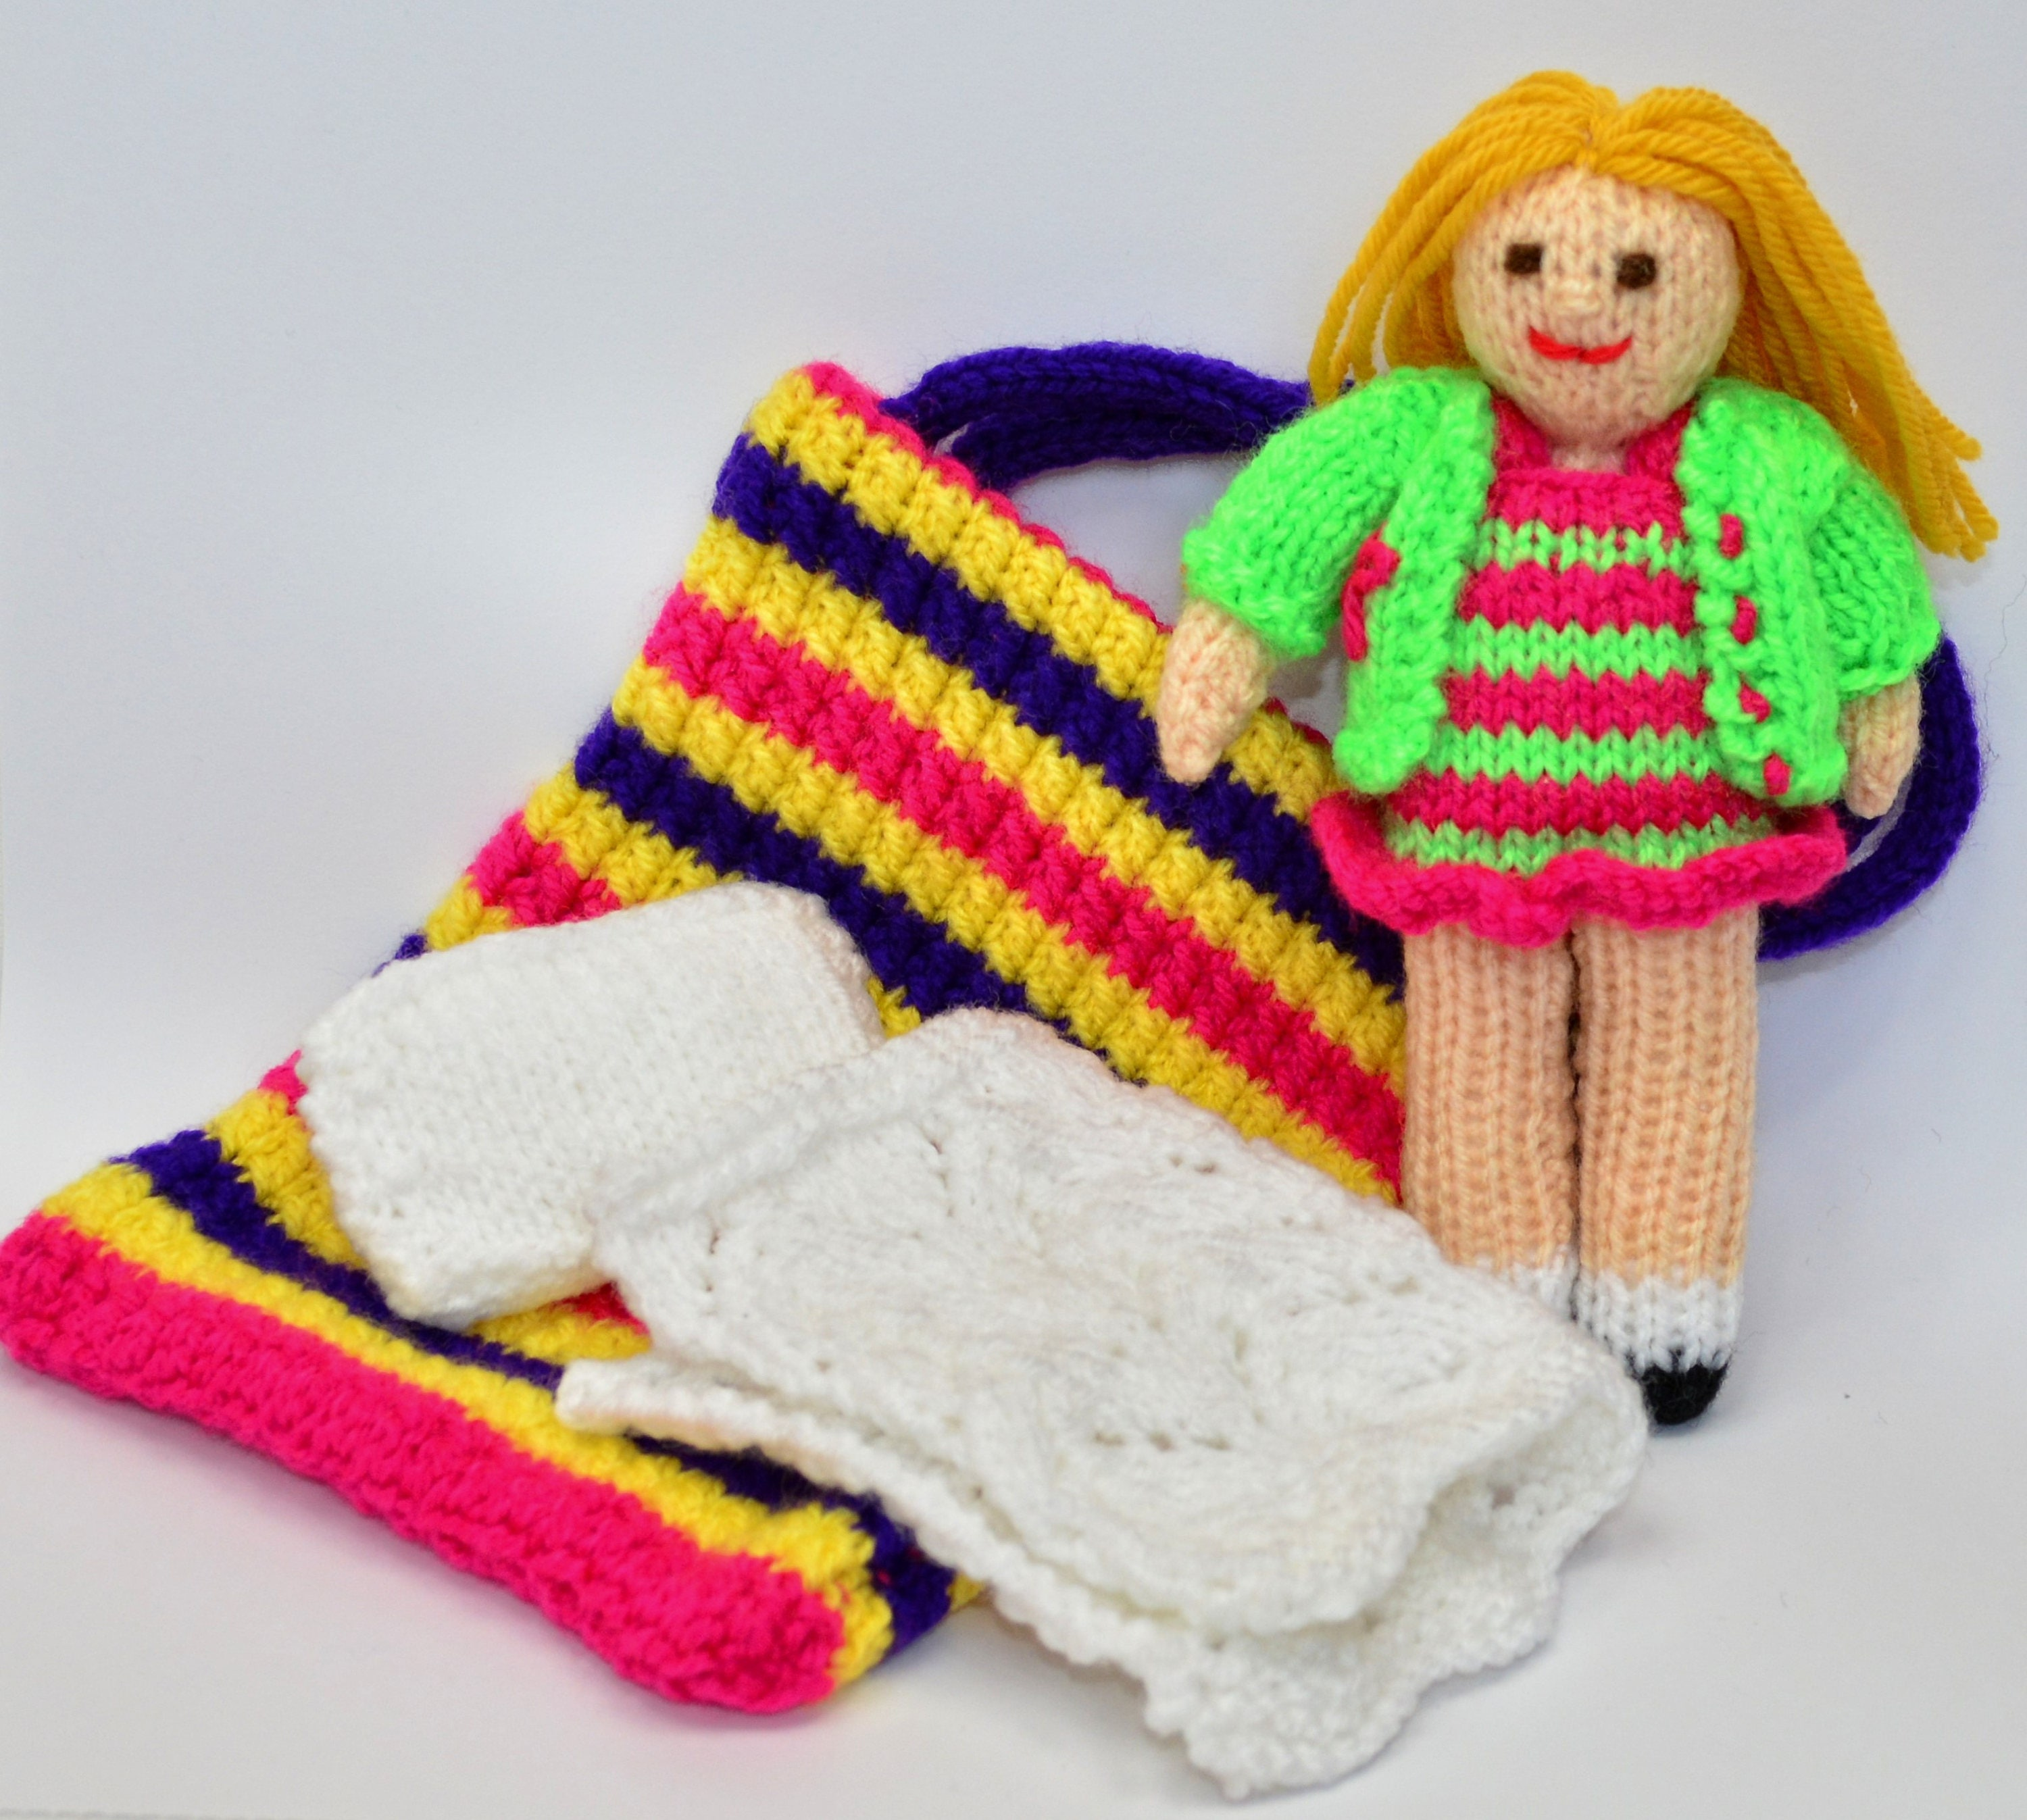 Rag doll pattern doll knitting pattern toy knitting pattern this is a digital file bankloansurffo Image collections